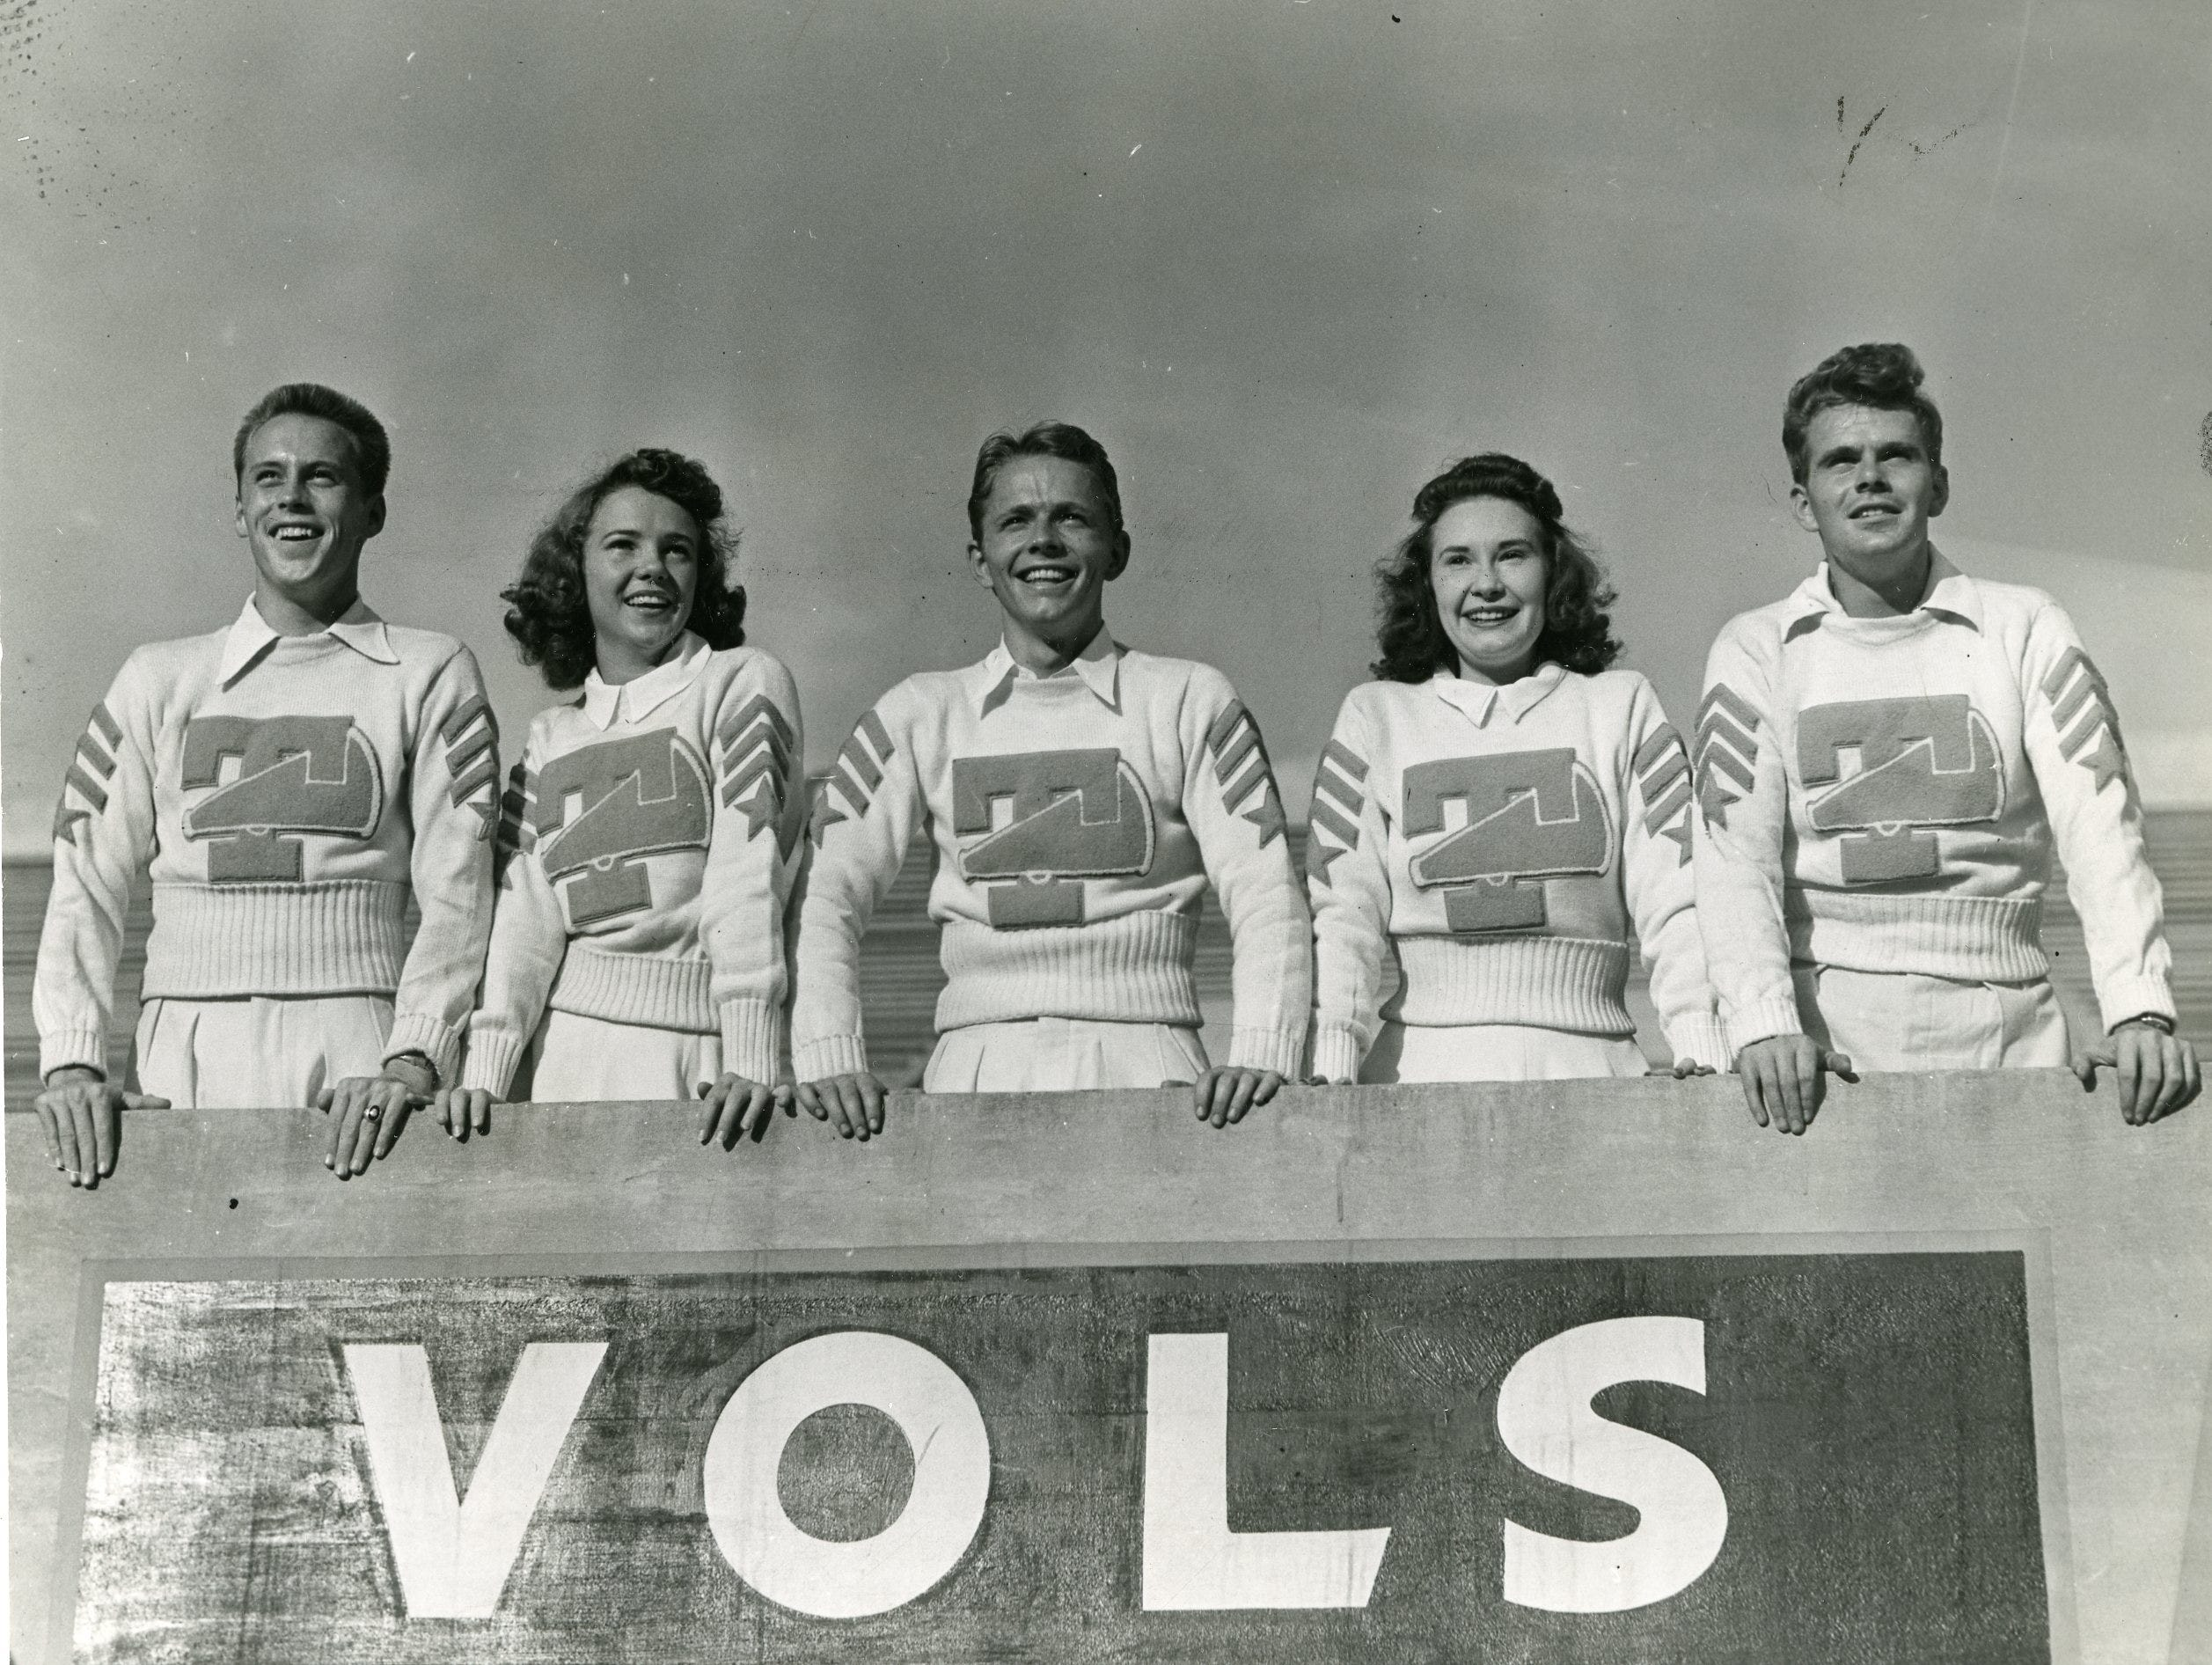 Sporting a cheerleading sweater and ready to cheer on the Vols are 1941 members I.T. Sliger, Helen Childs, head cheerleader Kyle Crowther, Peggy Roberts and Bill Killian.